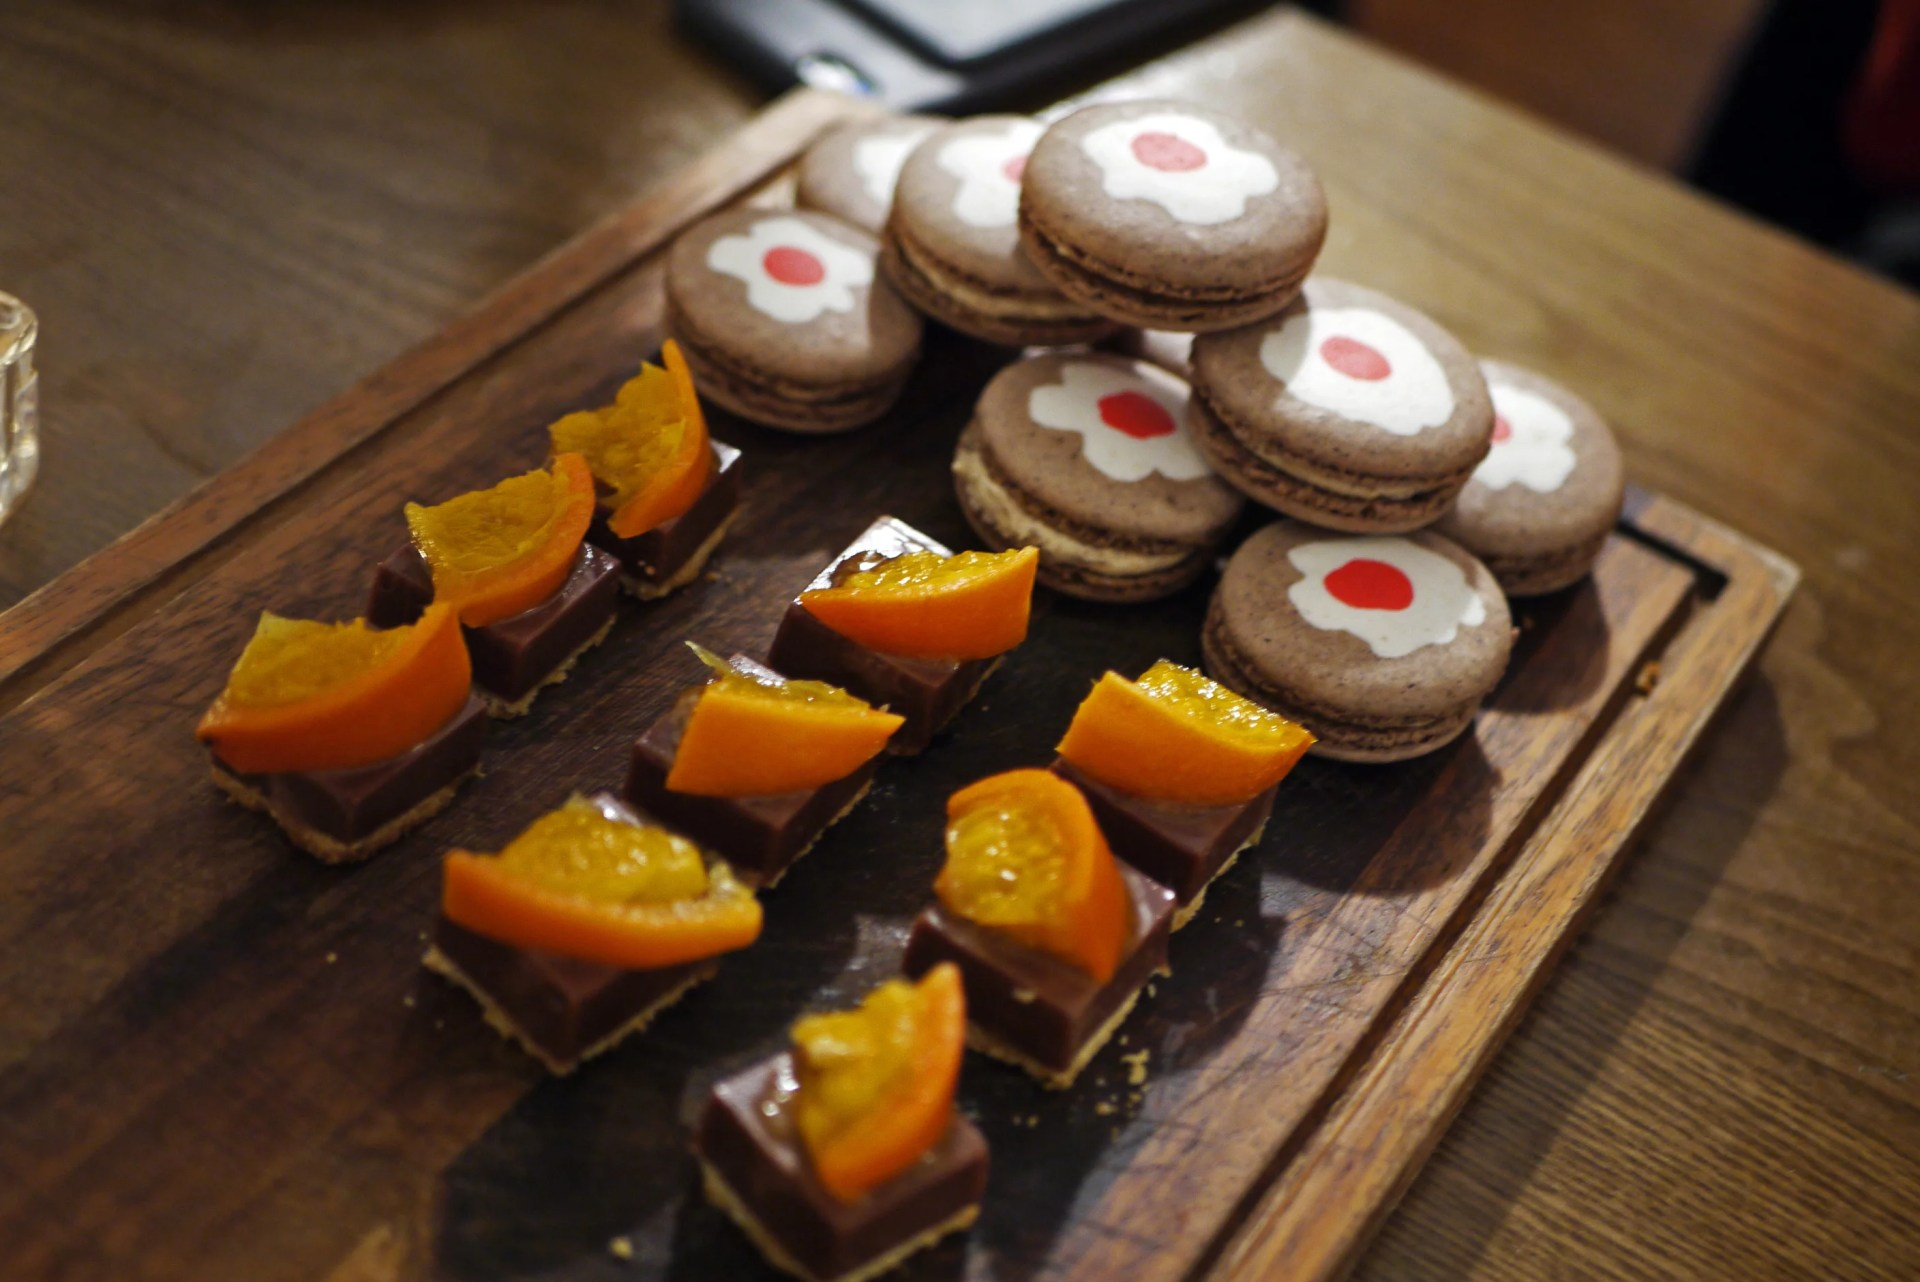 Bite-sized chocolate orange bites and christmas pudding macarons based off the desserts in Provenance's Christmas Fayre menu